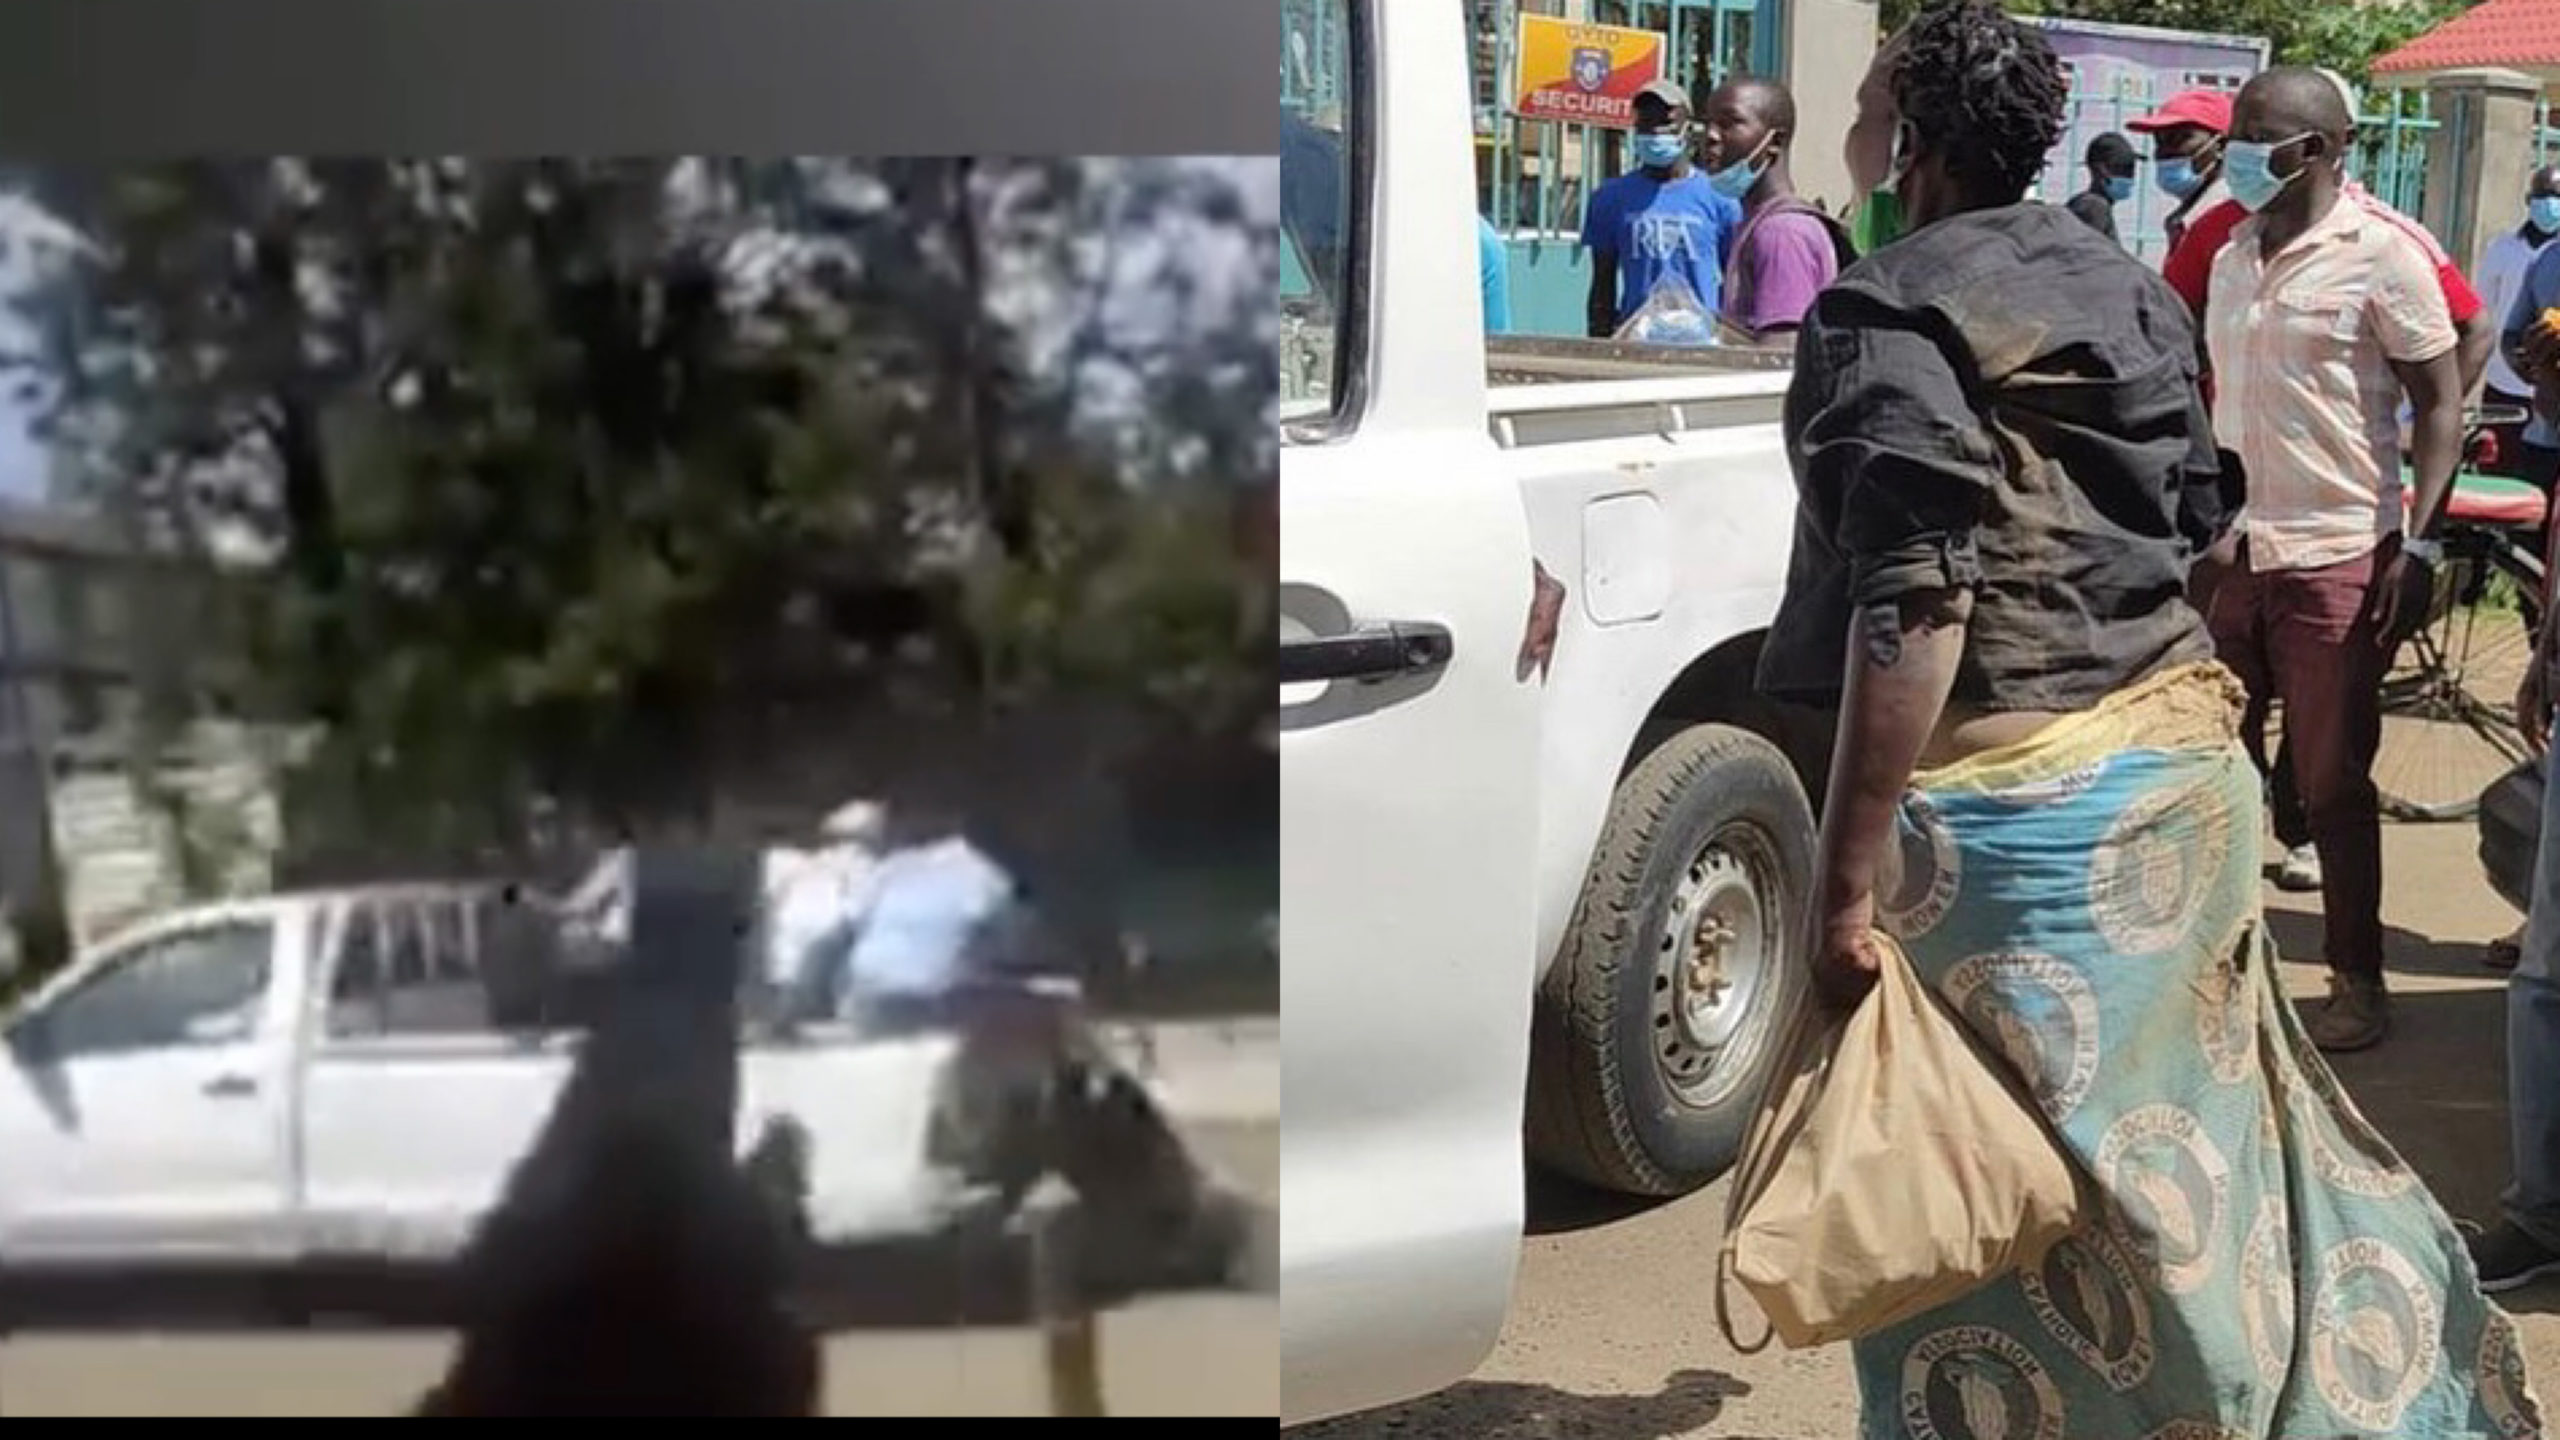 Meet the female hawker who was shamelessly dragged on a tarmac road by Kisumu county officers (Photo)